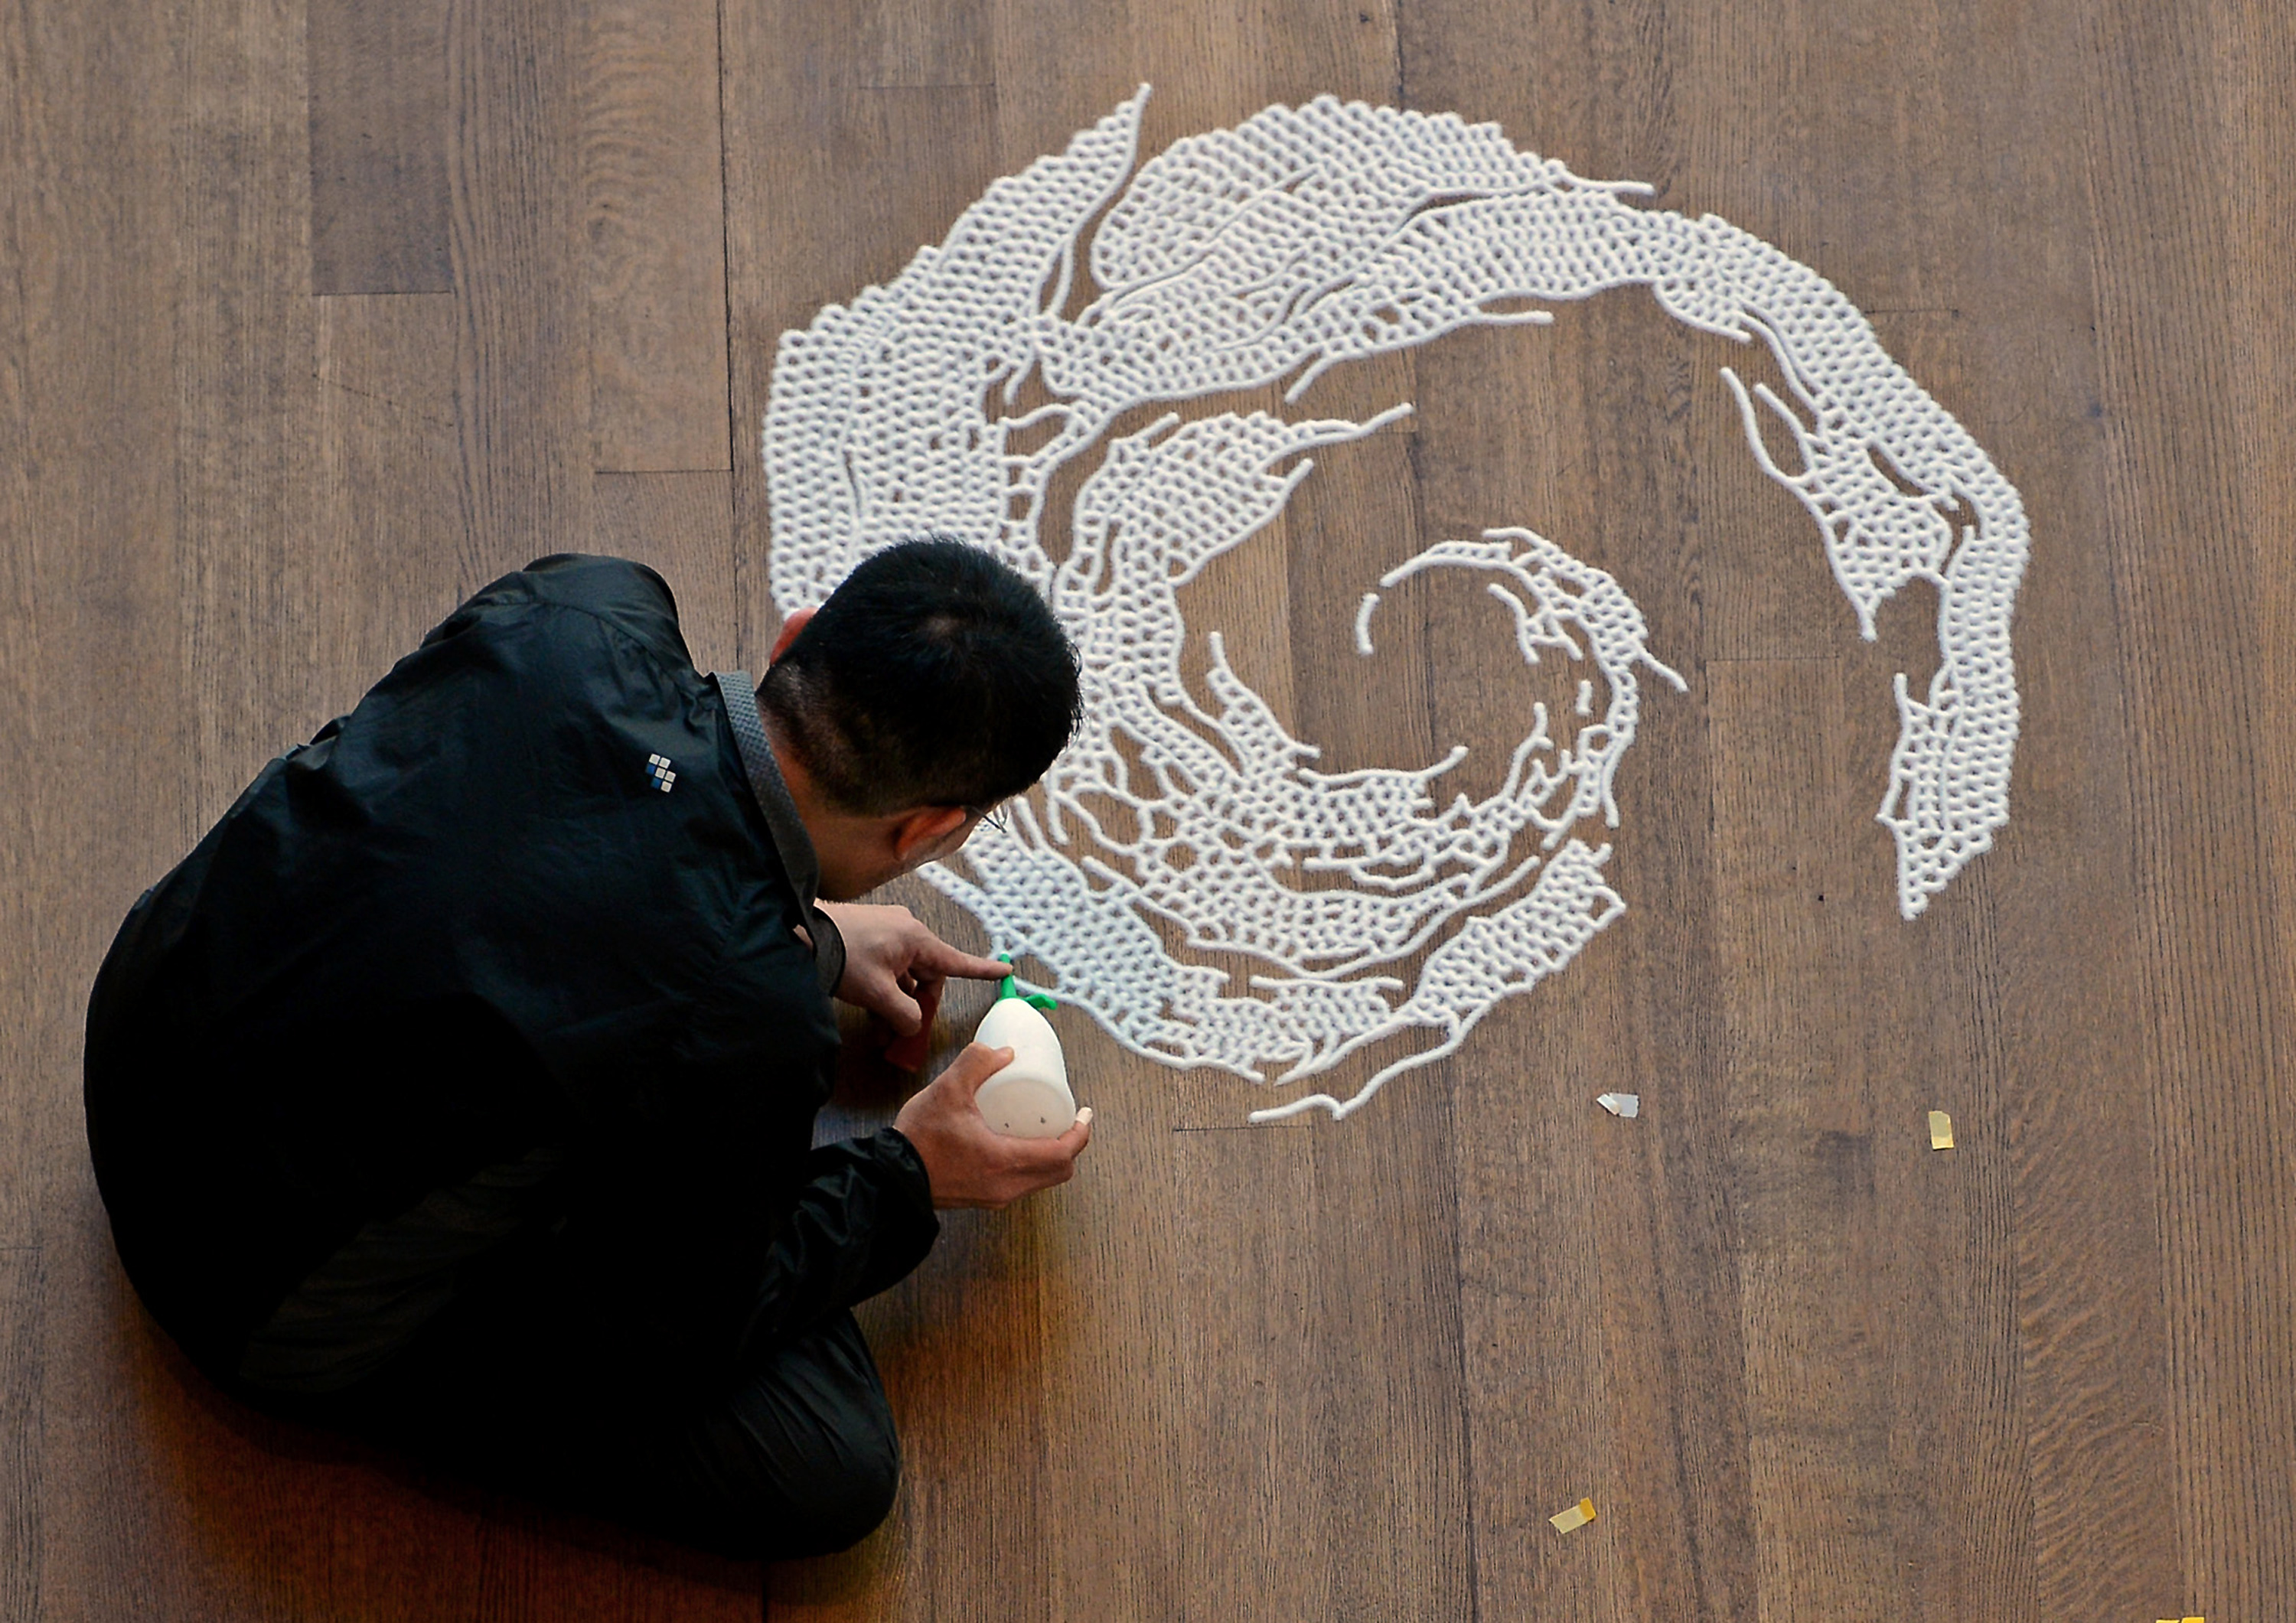 Artist Motoi Yamamoto works on his latest saltwork in the Robert Haywood Morrison Atrium at the Mint Museum Uptown in Charlotte, North Carolina, Monday, February 18, 2013. (Jeff Siner/Charlotte Observer/MCT via Getty Images)